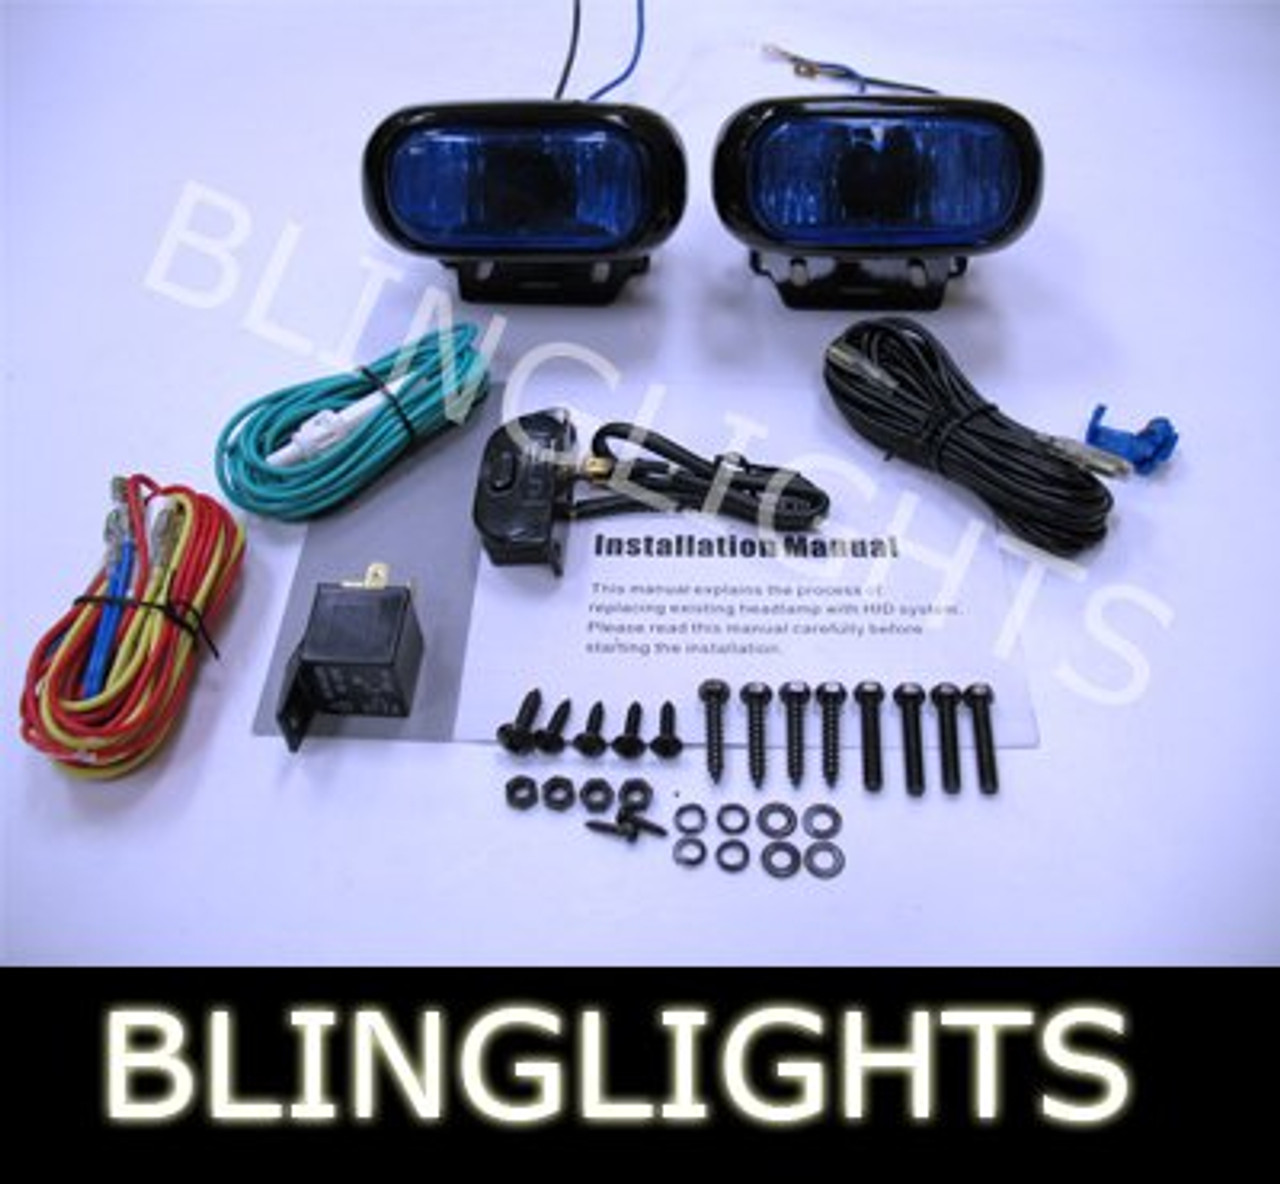 1995 1996 1997 1998 Nissan 200SX B14 Xenon Fog Lights Driving Lamps B Wire Harness on wire lamp, wire ball, wire antenna, wire nut, wire leads, wire clothing, wire sleeve, wire connector, wire cap, wire holder,